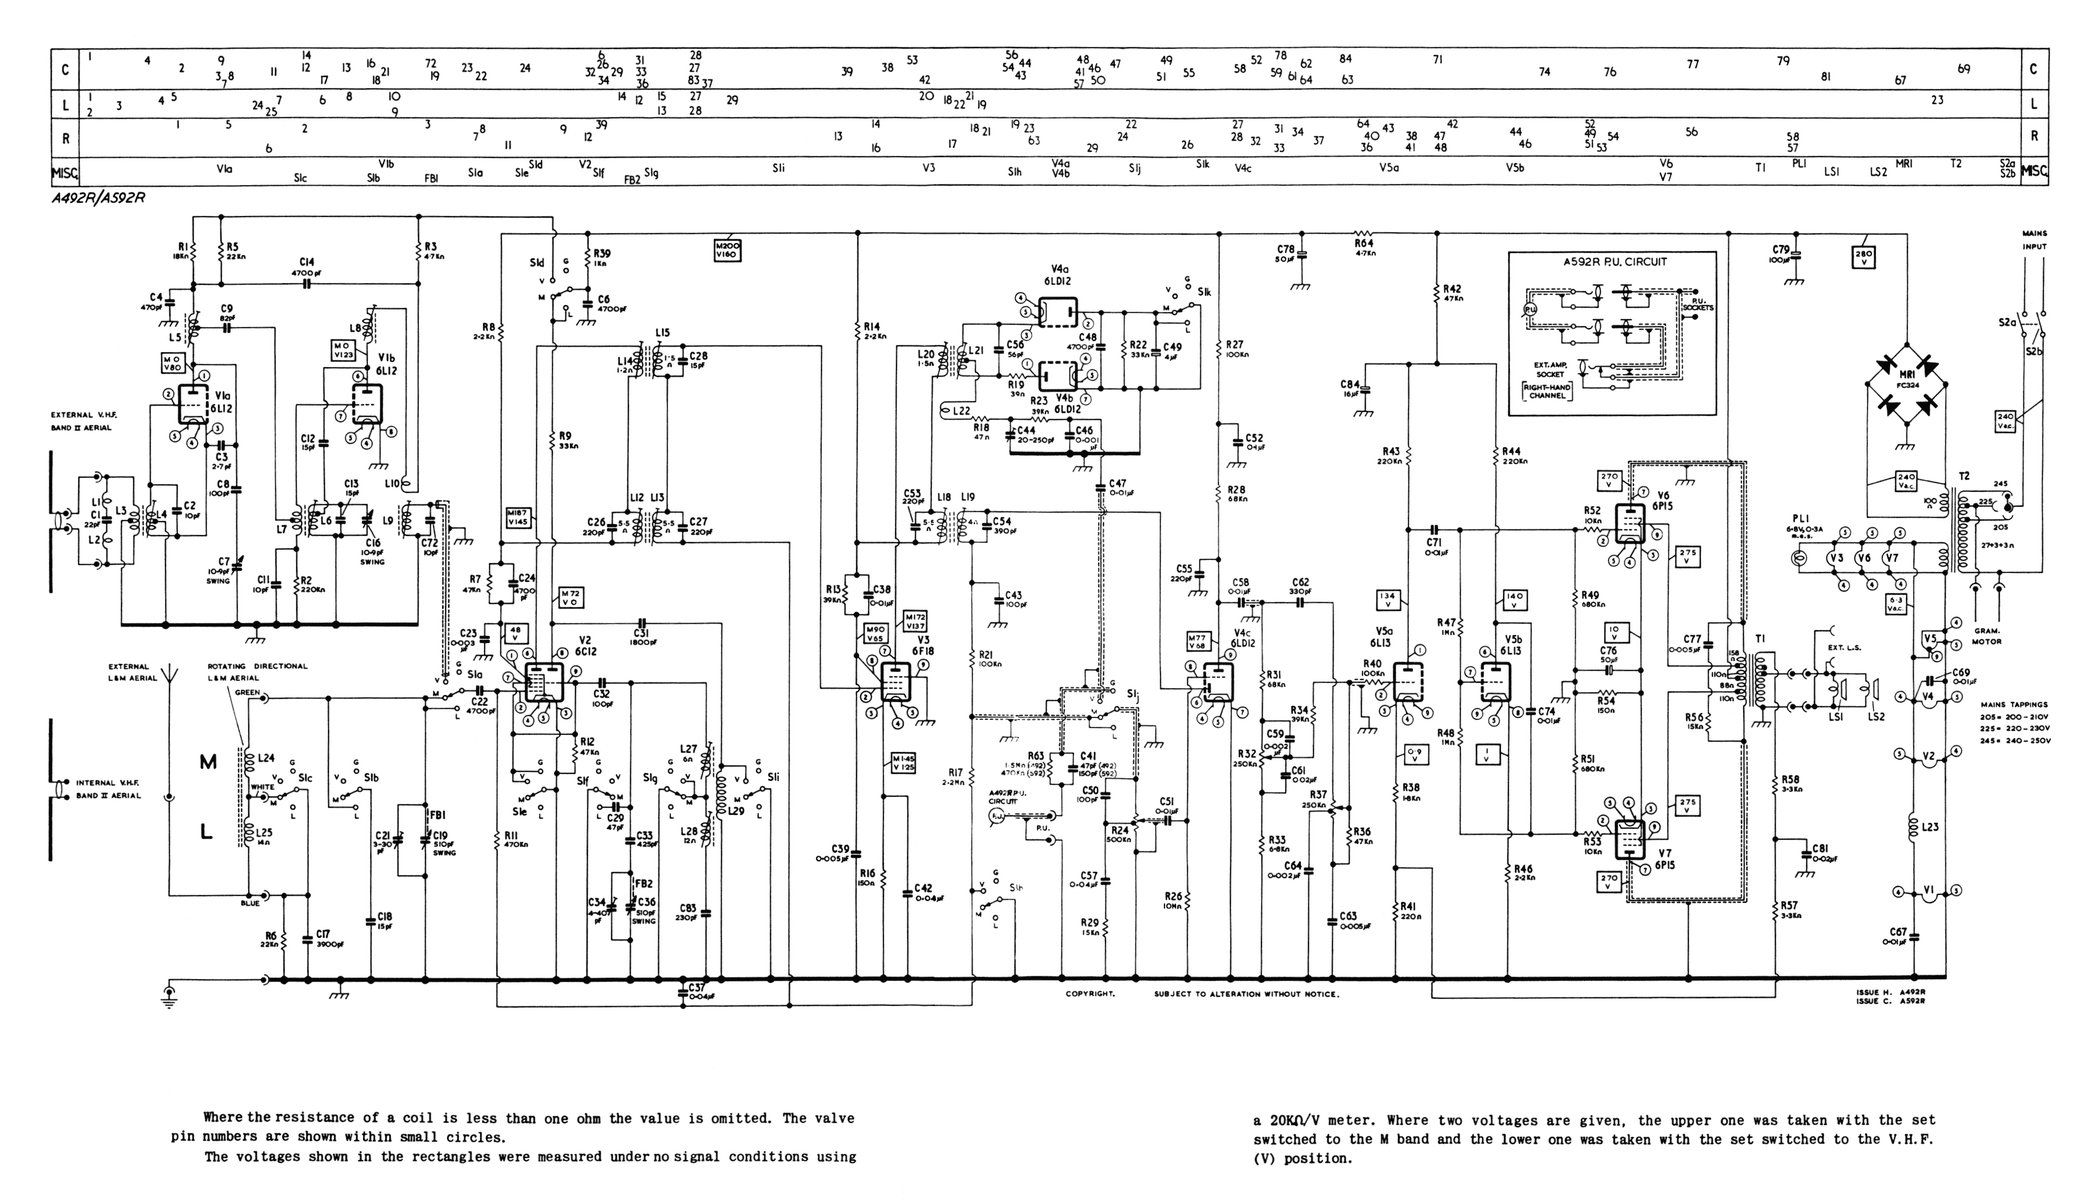 the diagram dungeon 6 the murphy a592r radiogram is covered in the a492r diagram